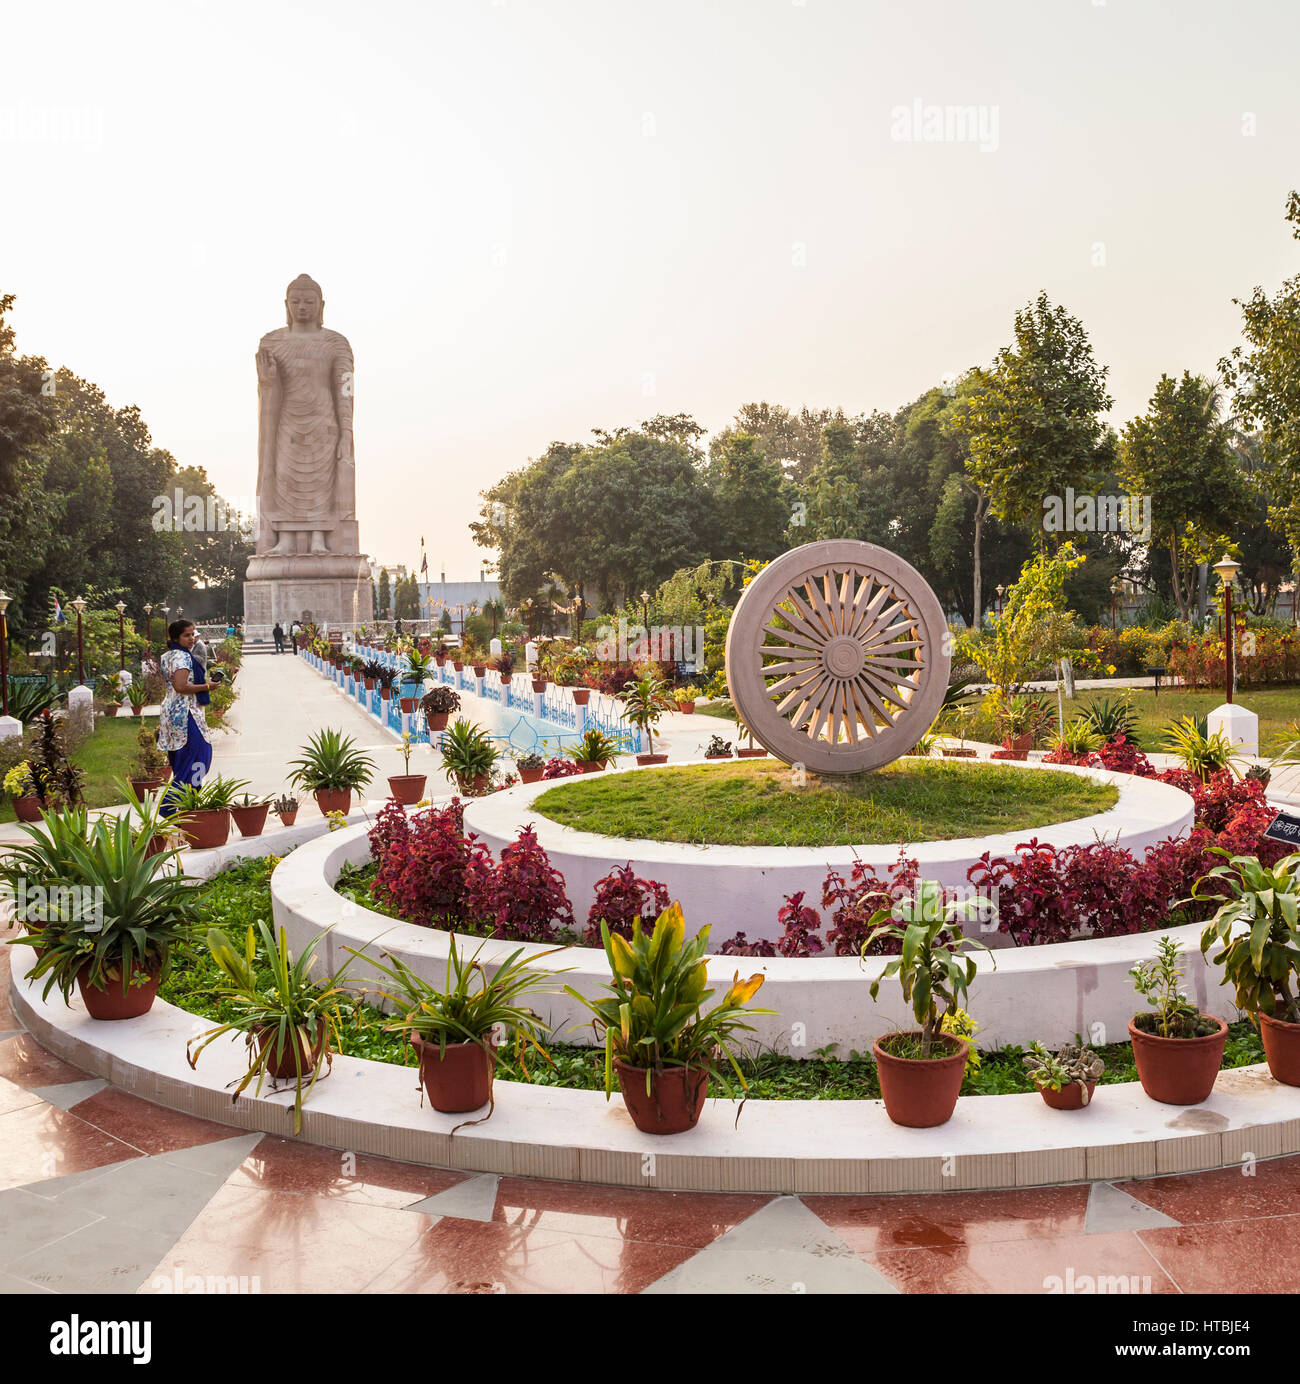 A view of the Ashoka Chakra / dharma wheel, walkway, and gardens surrounding the standing Buddha at the Thai temple - Stock Image